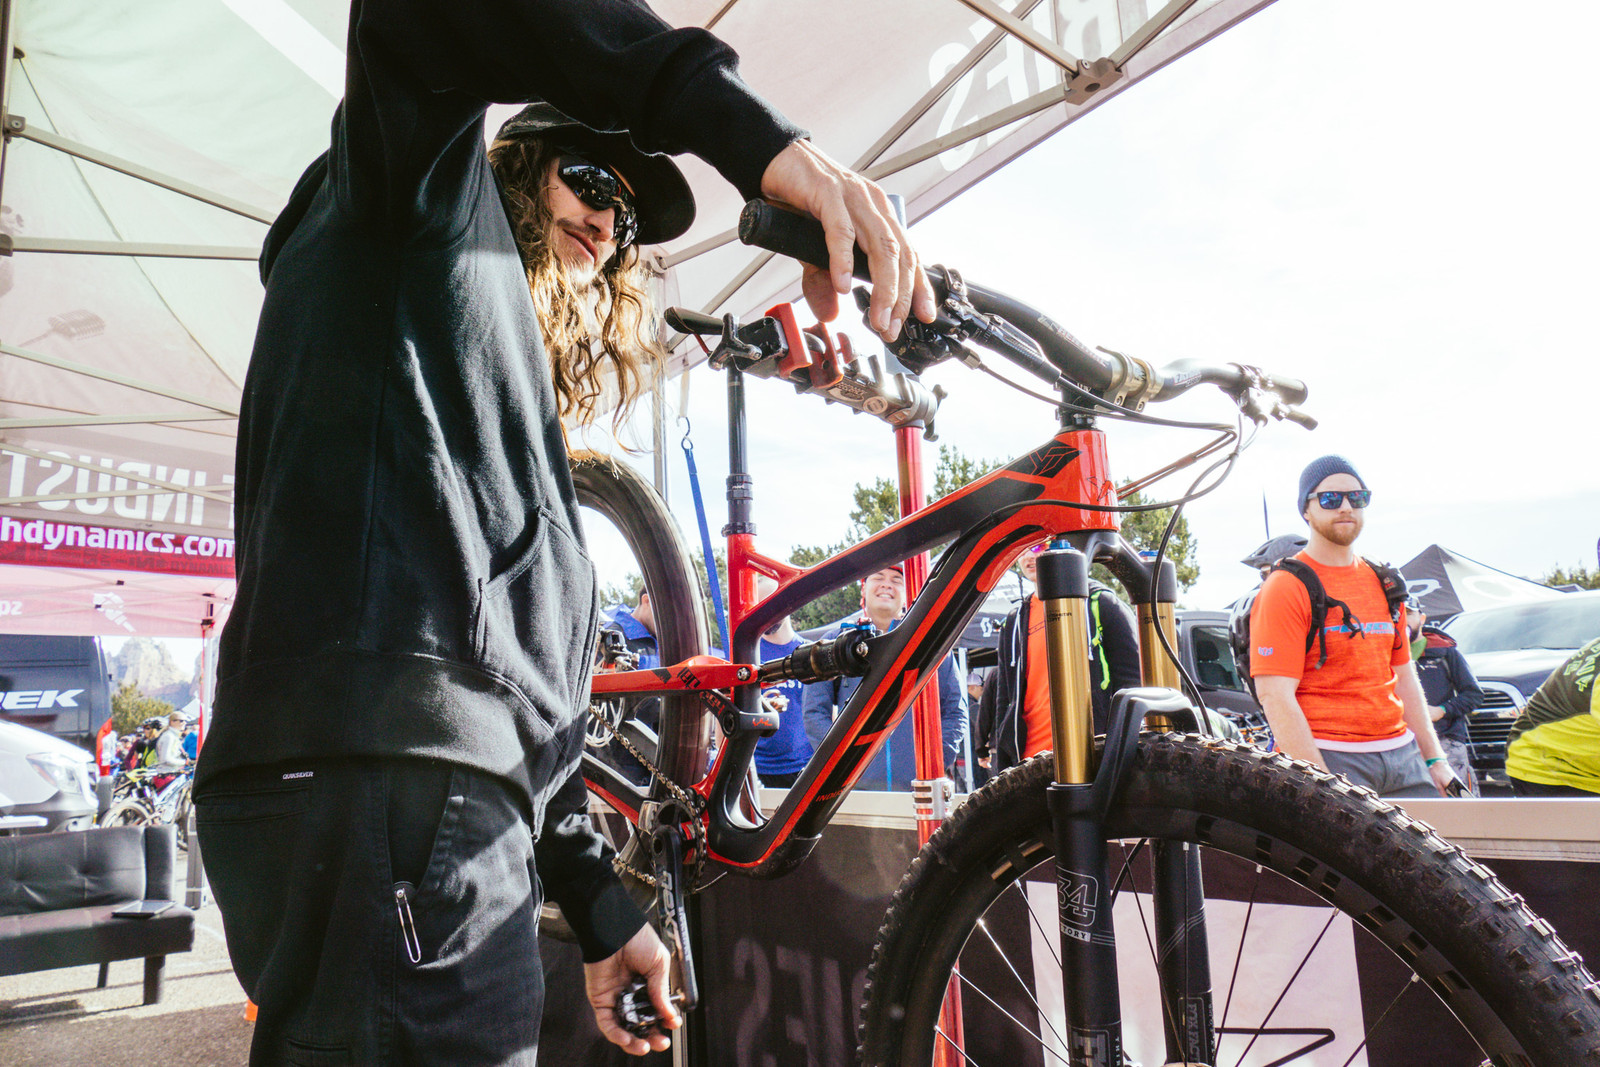 YT in the House! - PIT BITS - Fresh Products from the Sedona Mountain Bike Festival - Mountain Biking Pictures - Vital MTB